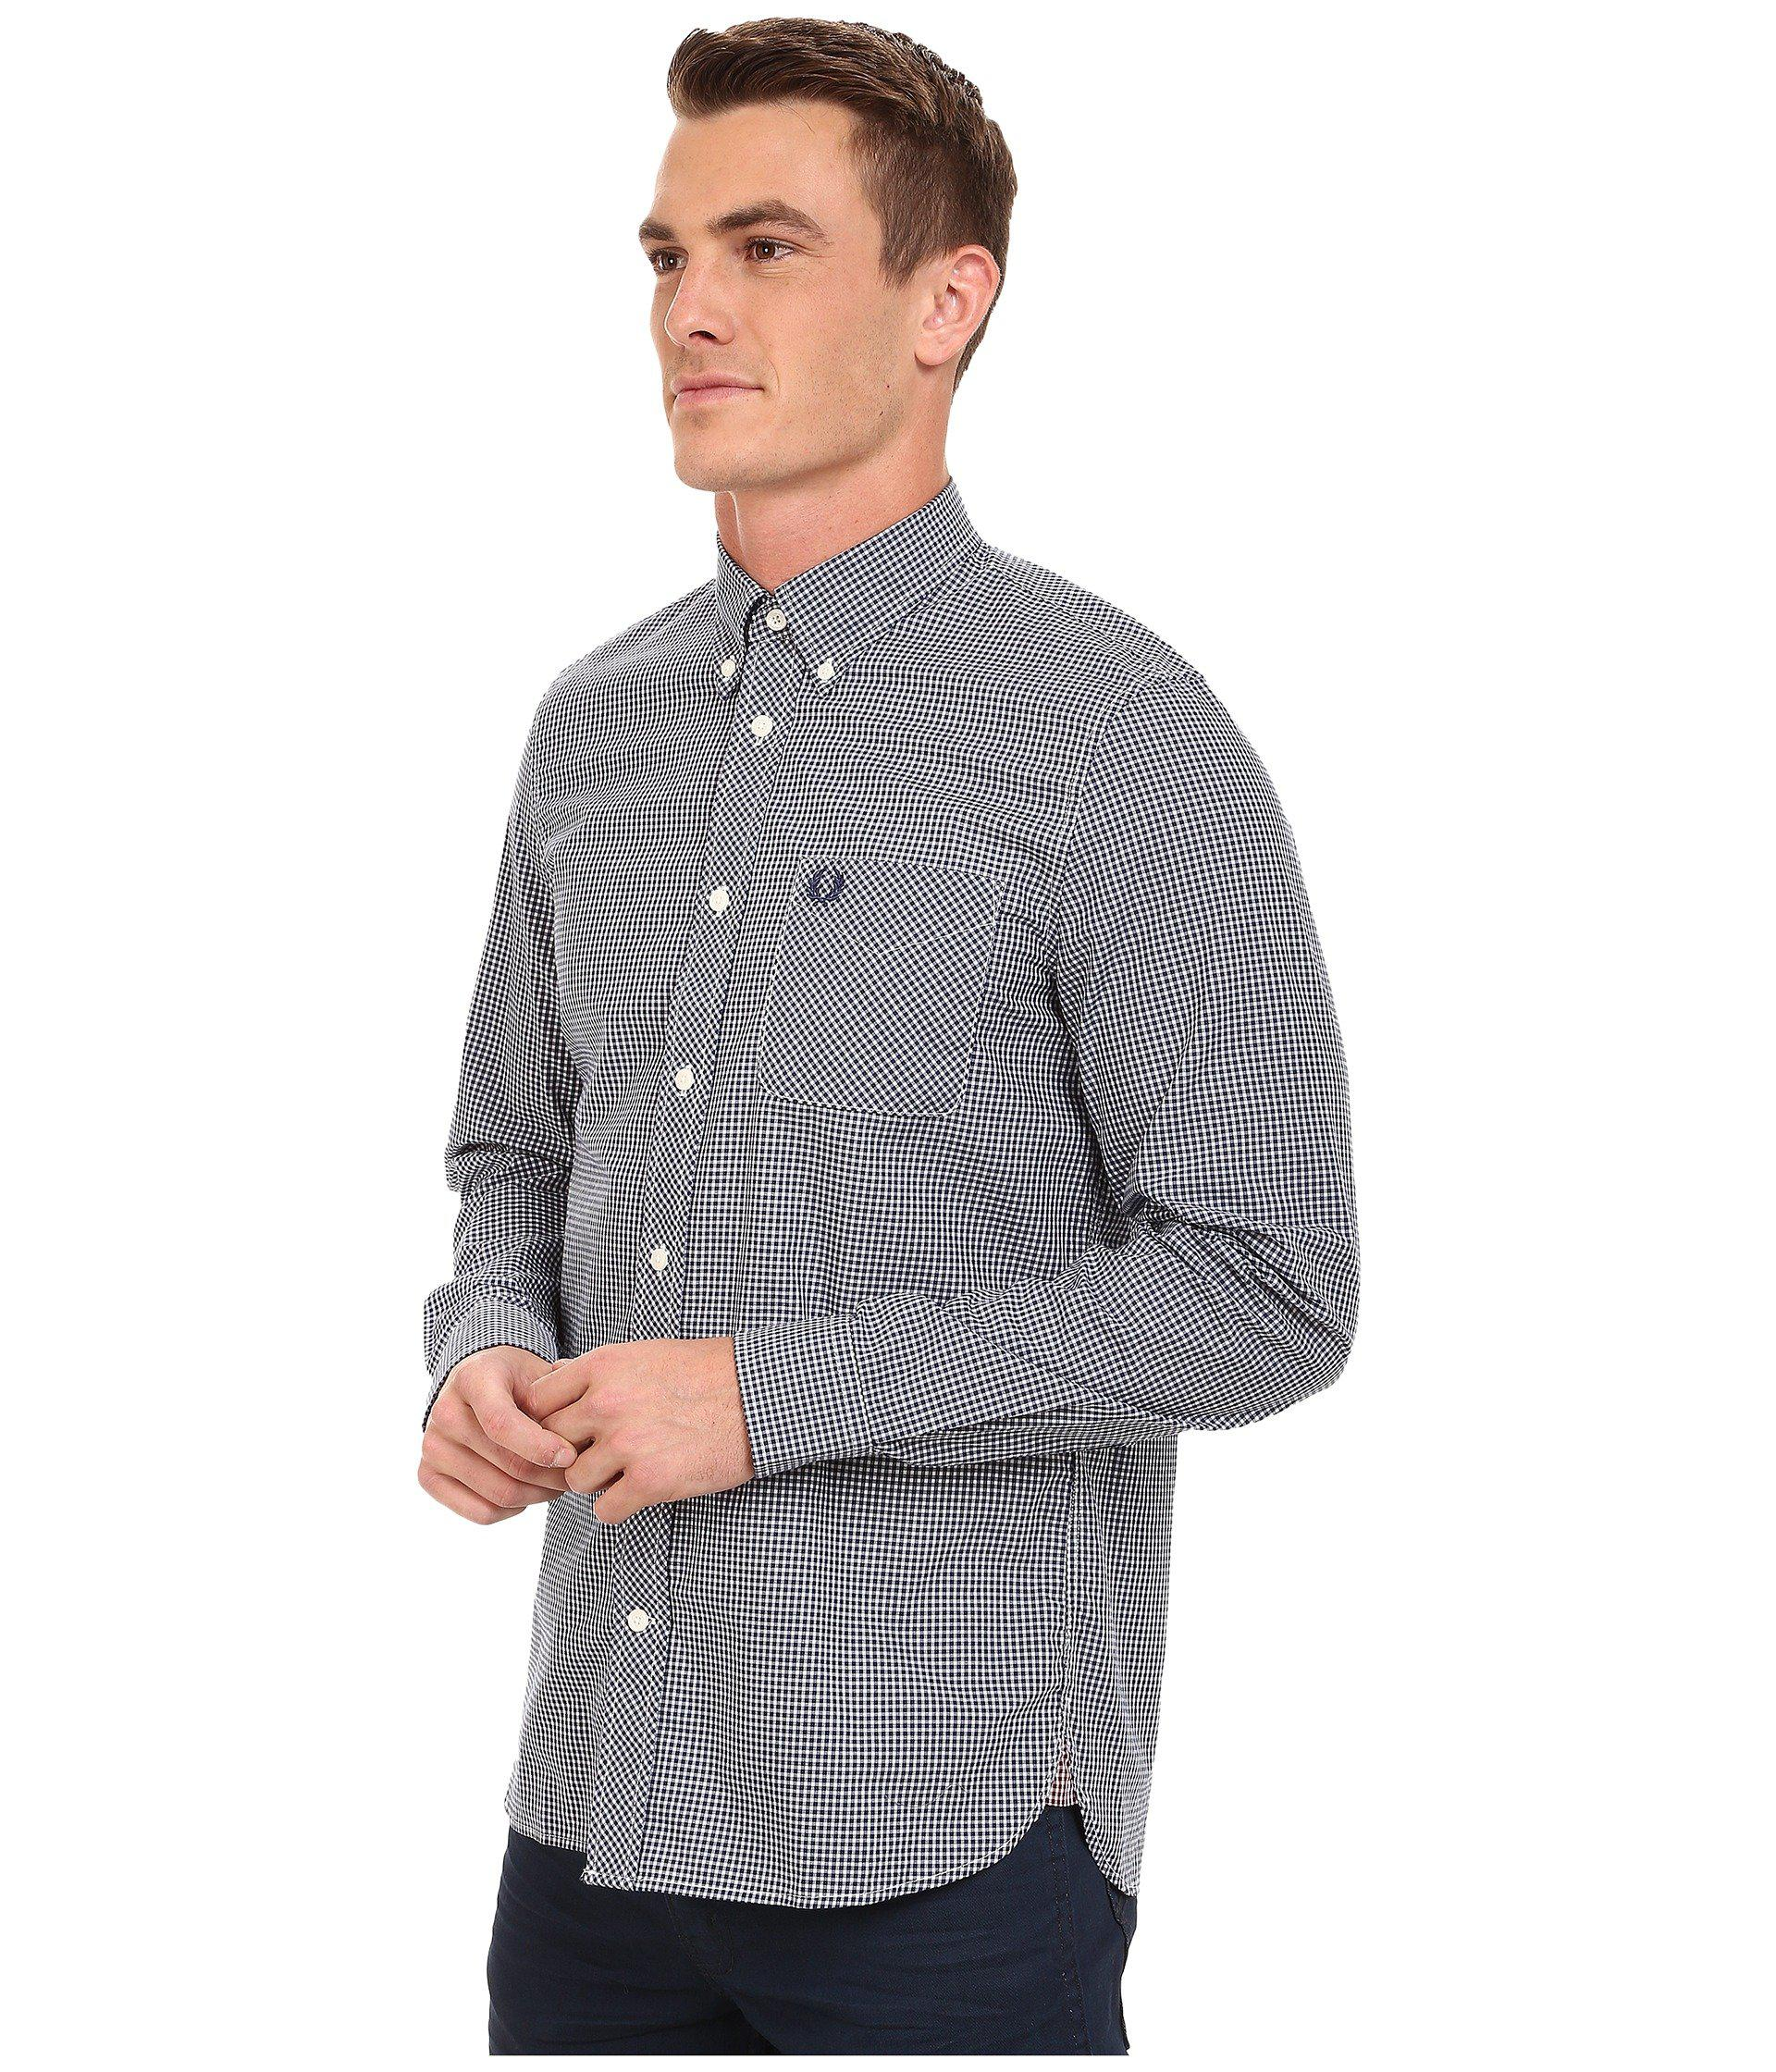 cfa07067c Lyst - Fred Perry Classic Gingham Shirt in Blue for Men